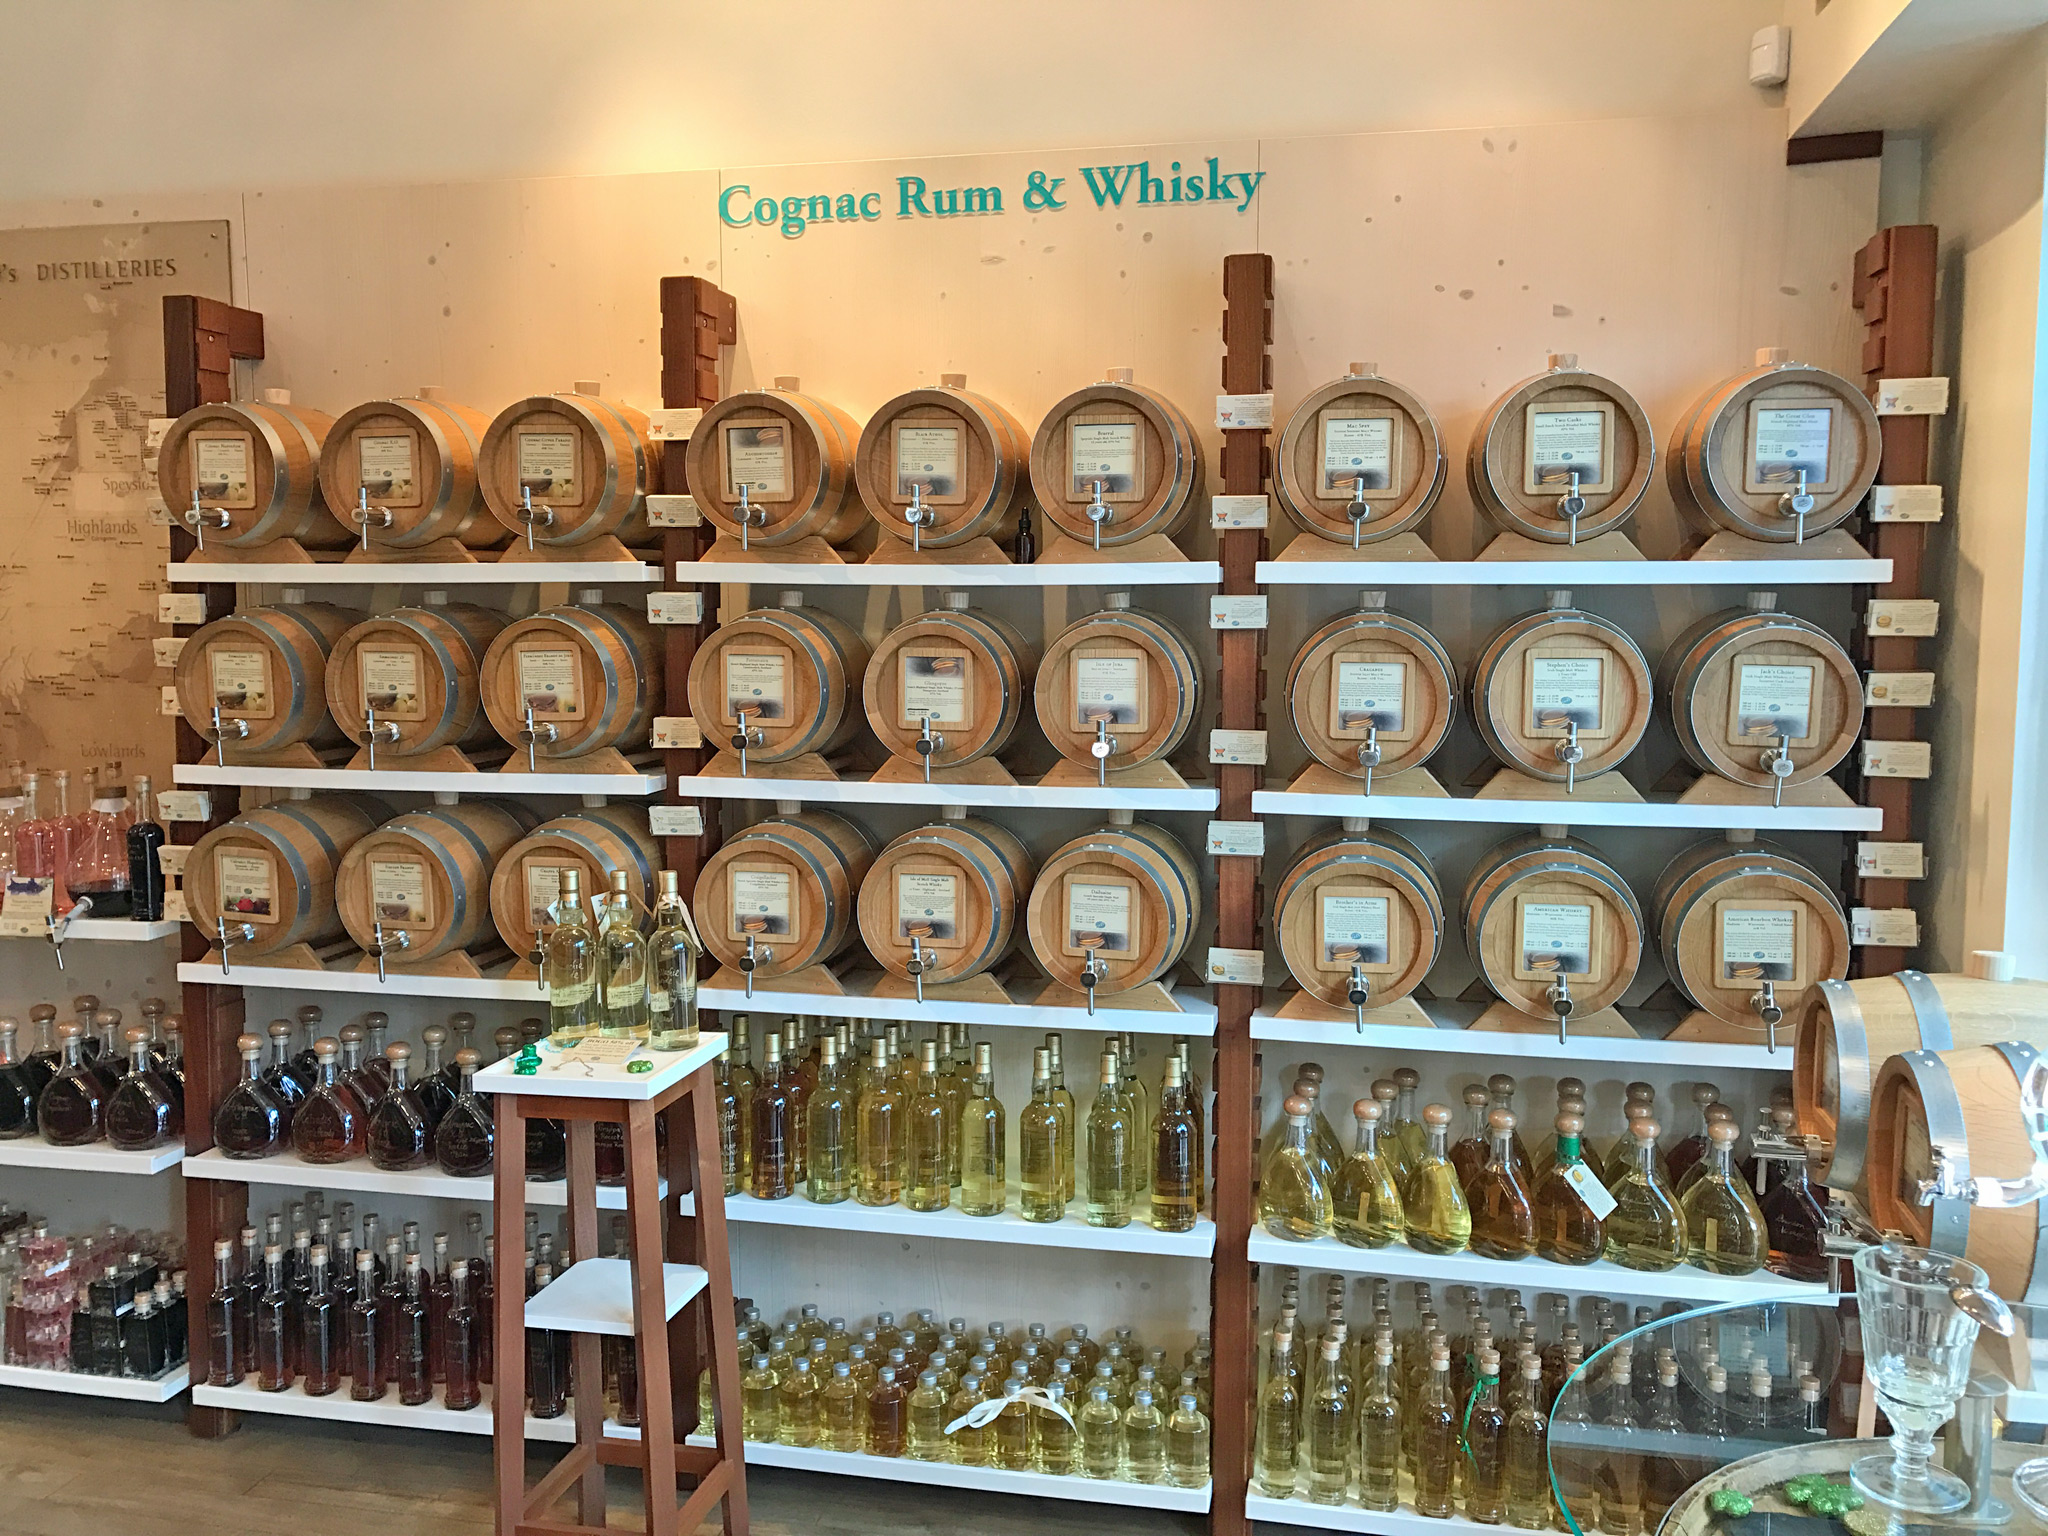 Cognac Rum & Whisky in the Cask